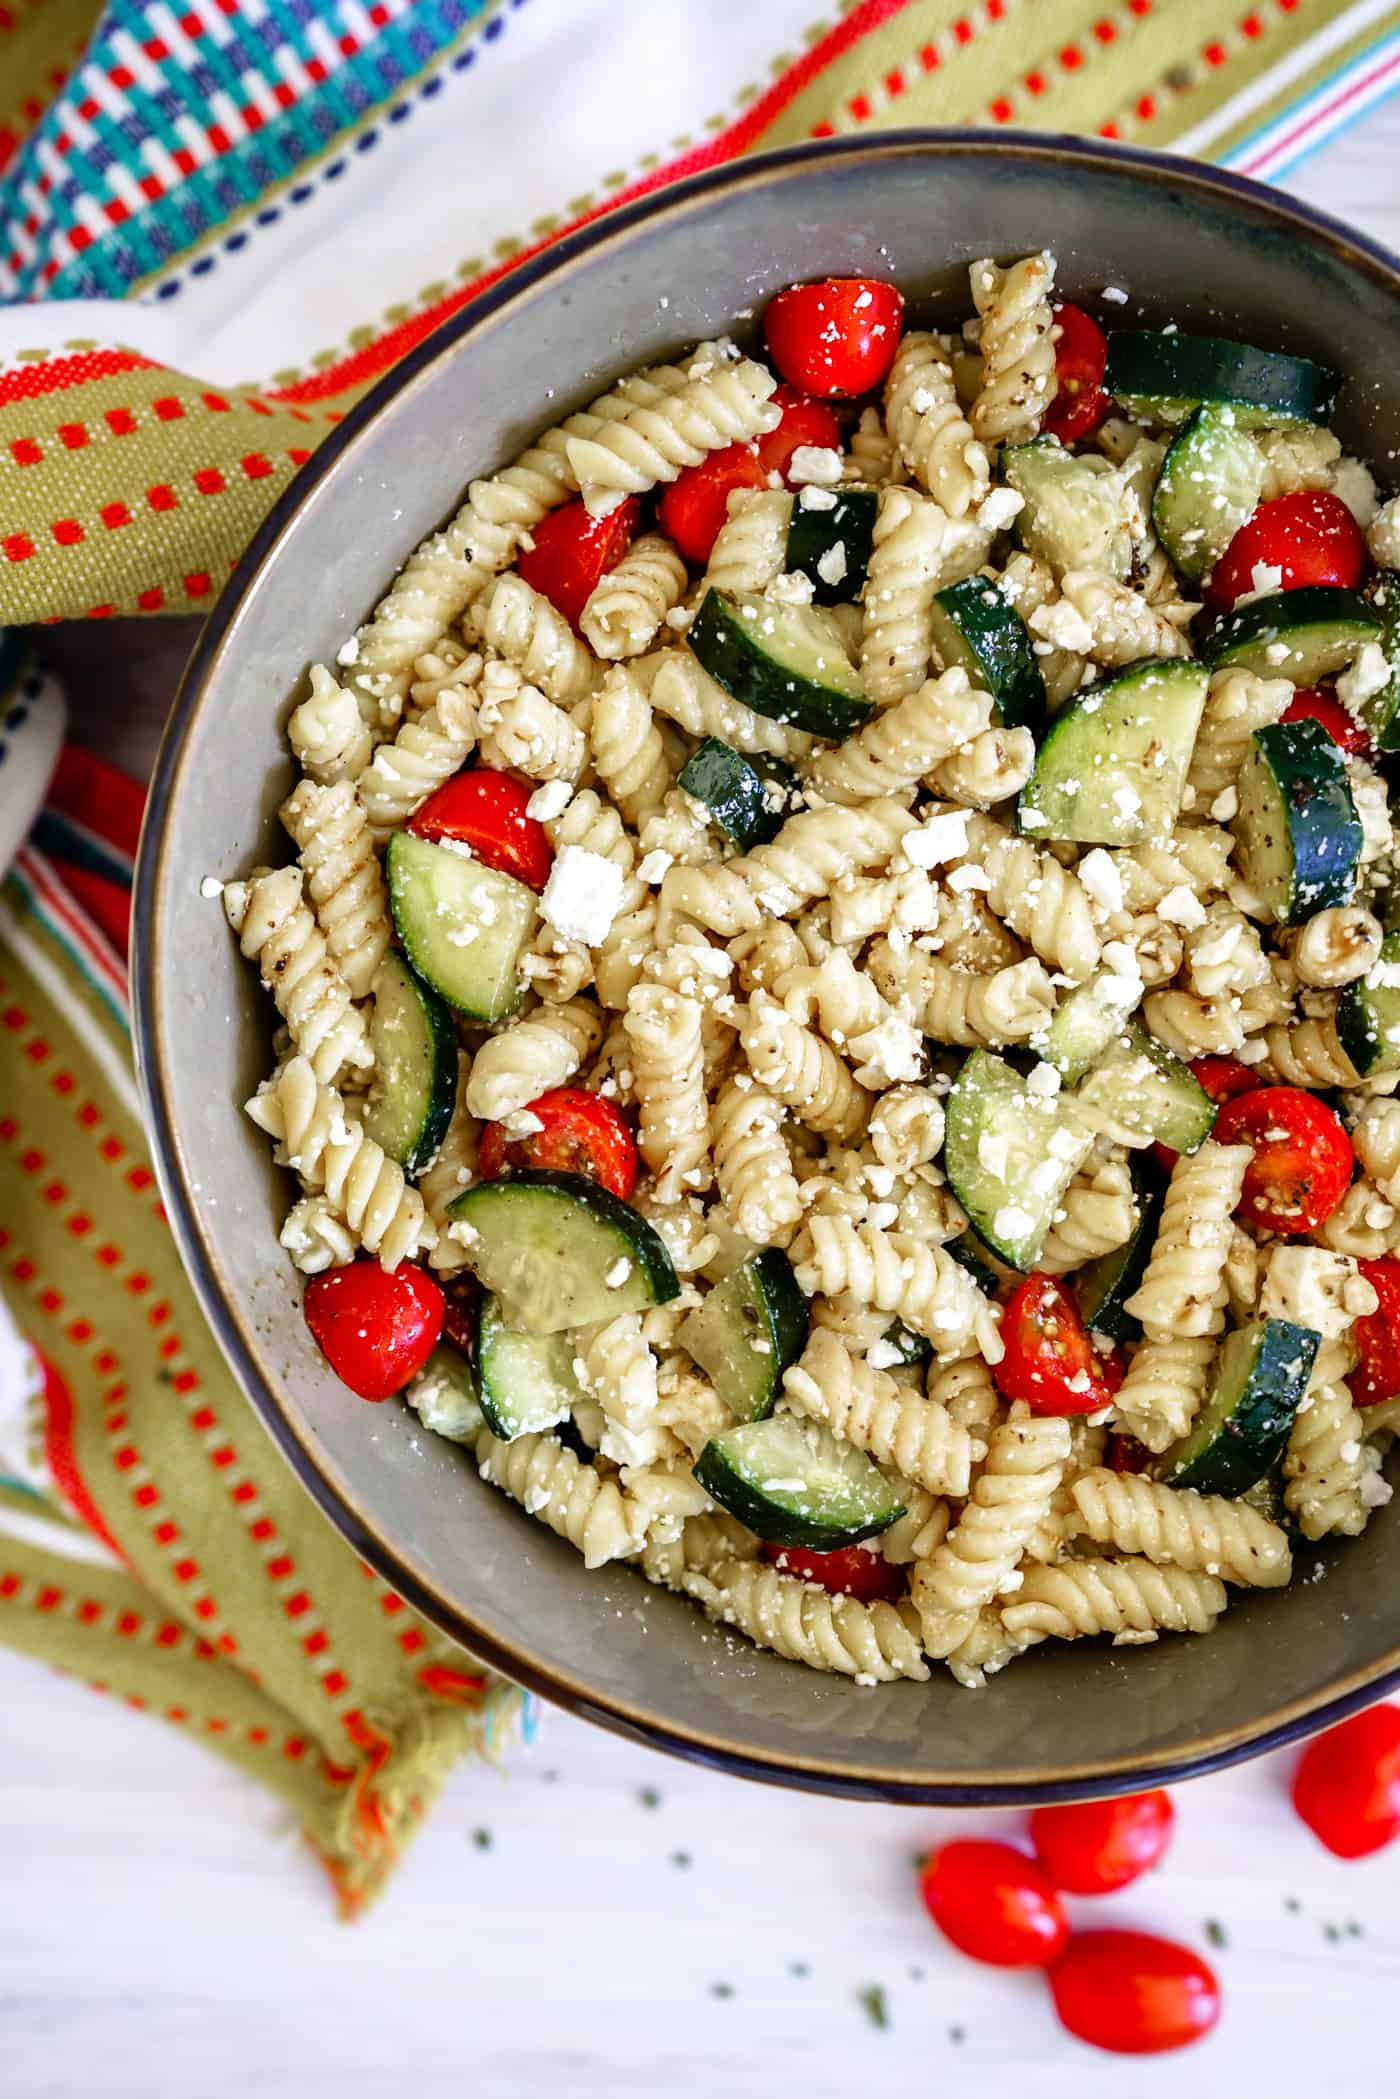 Large bowl filled with Instant Pot Pasta Salad with tomatoes and cucumbers